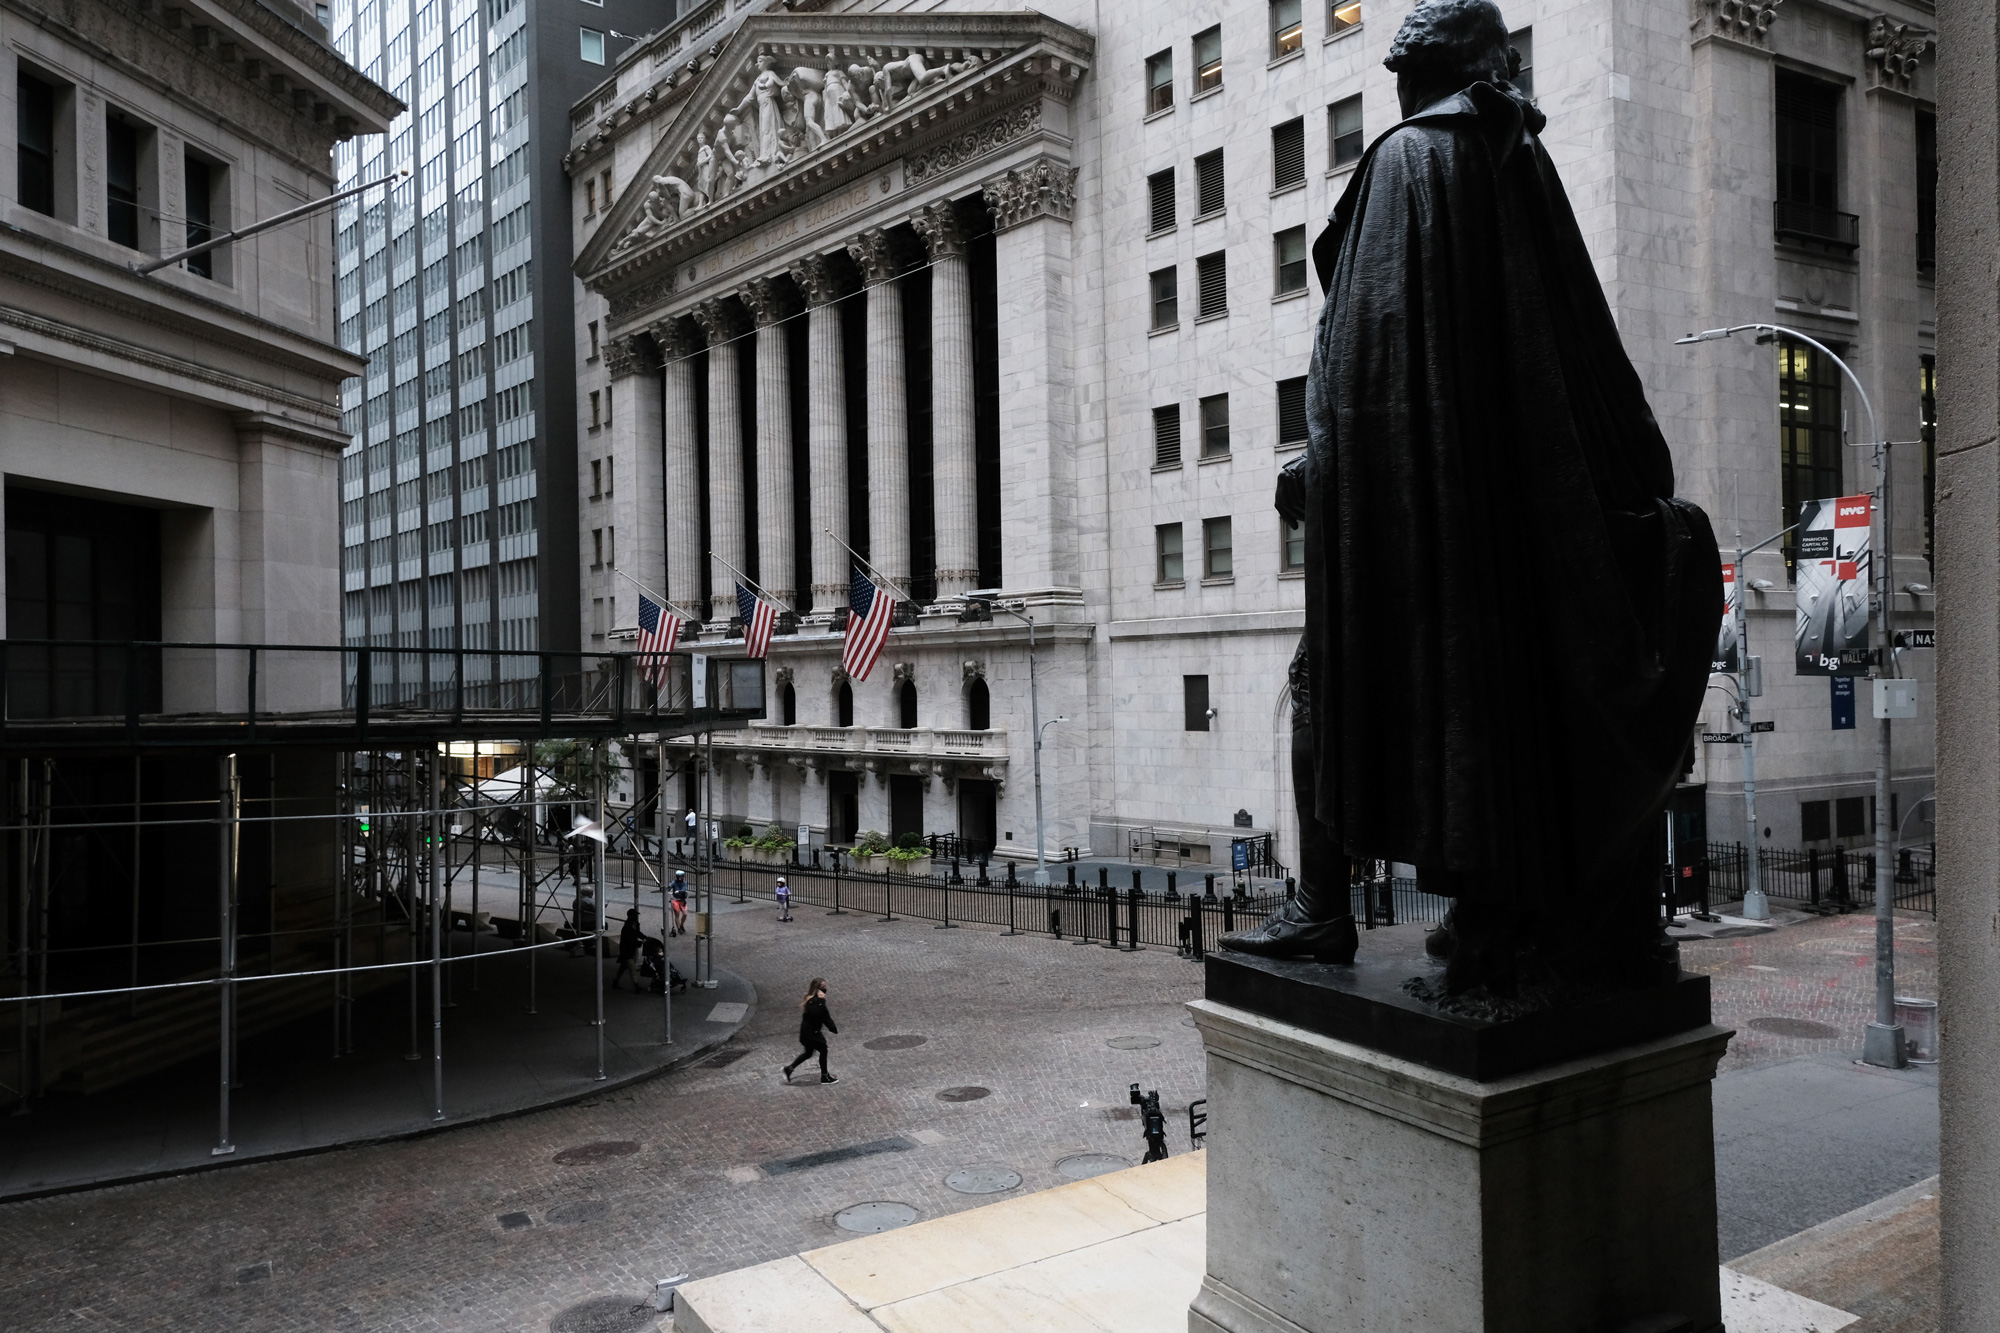 People walk by the New York Stock Exchange in lower Manhattan on October 2 in New York City.